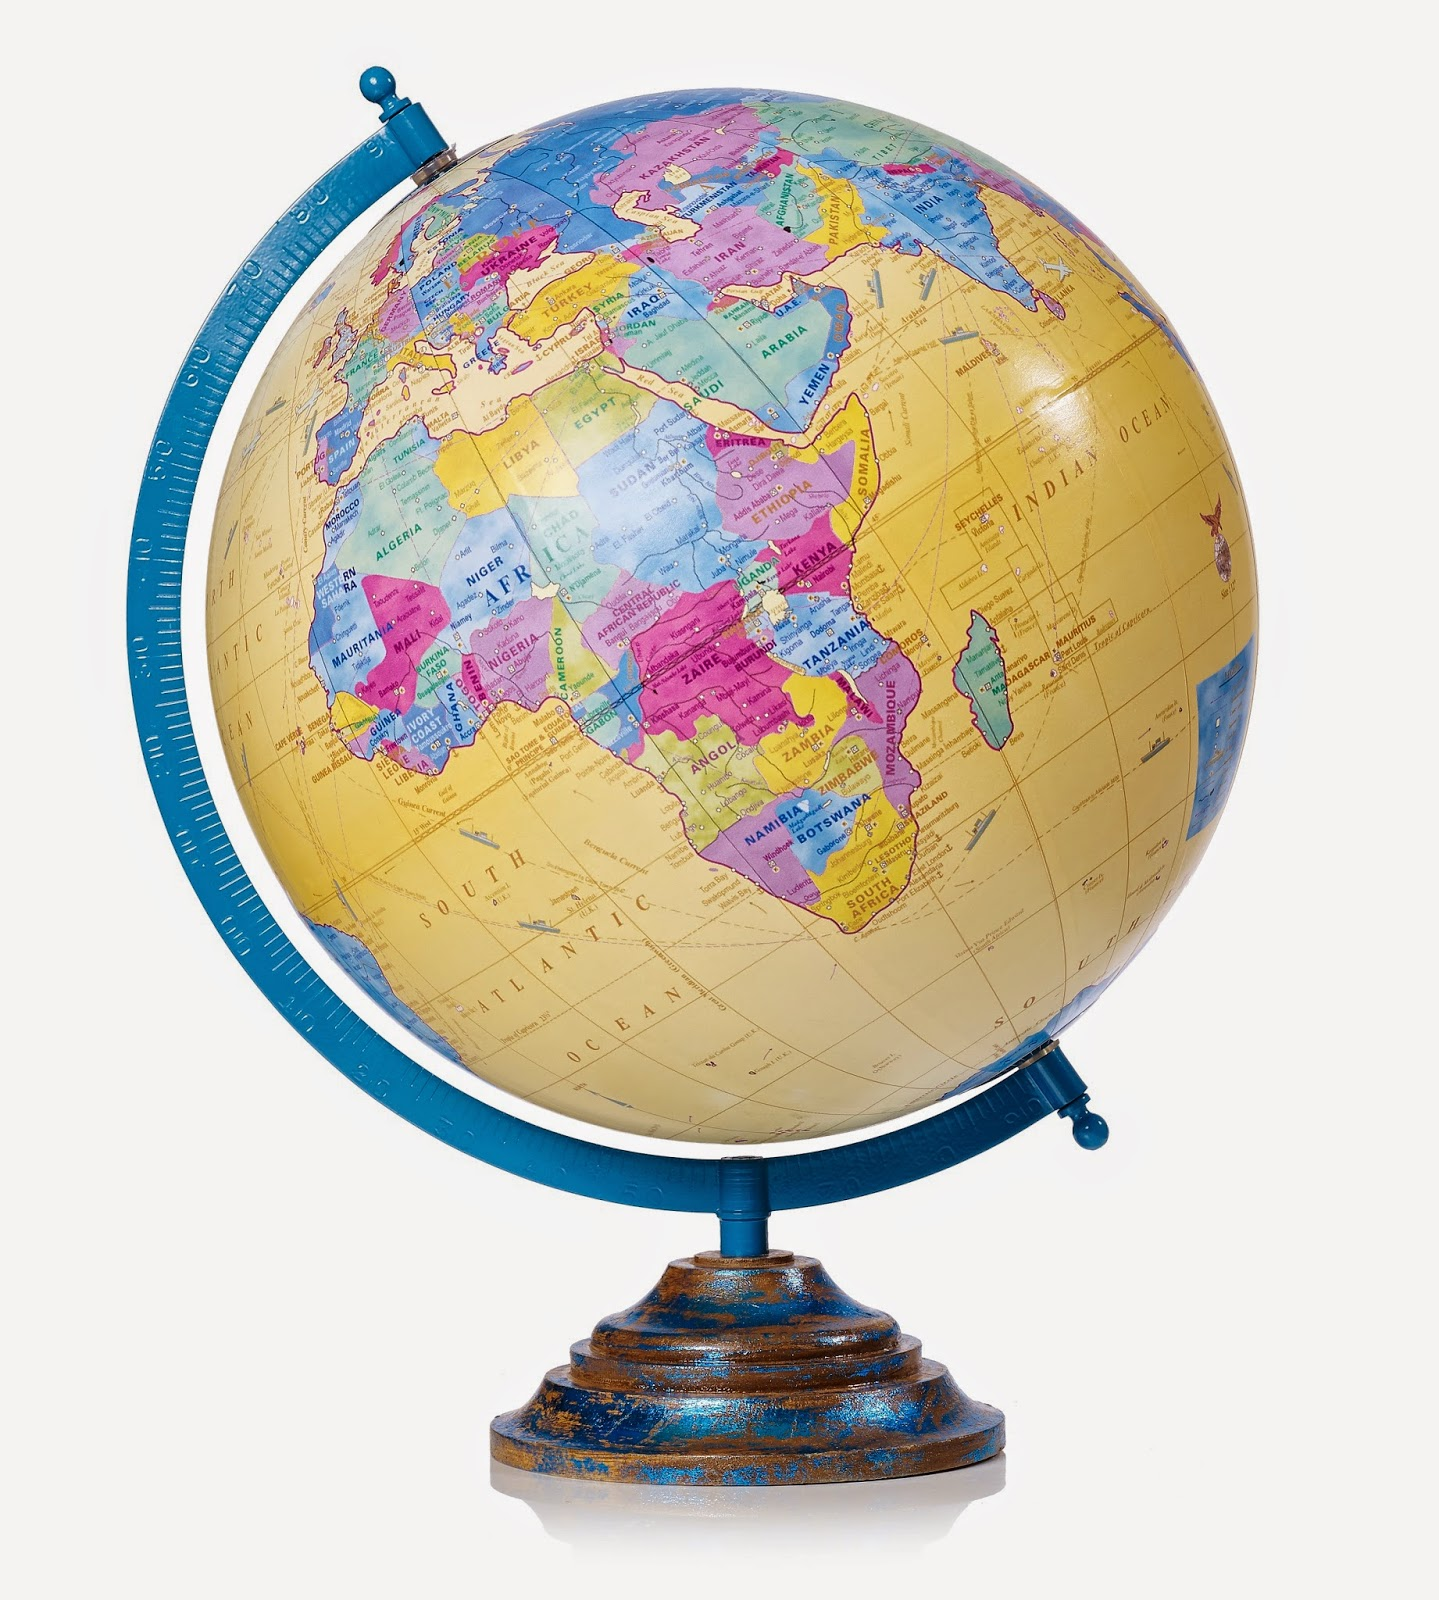 Oliver Bonas brightly coloured globe with wooden base